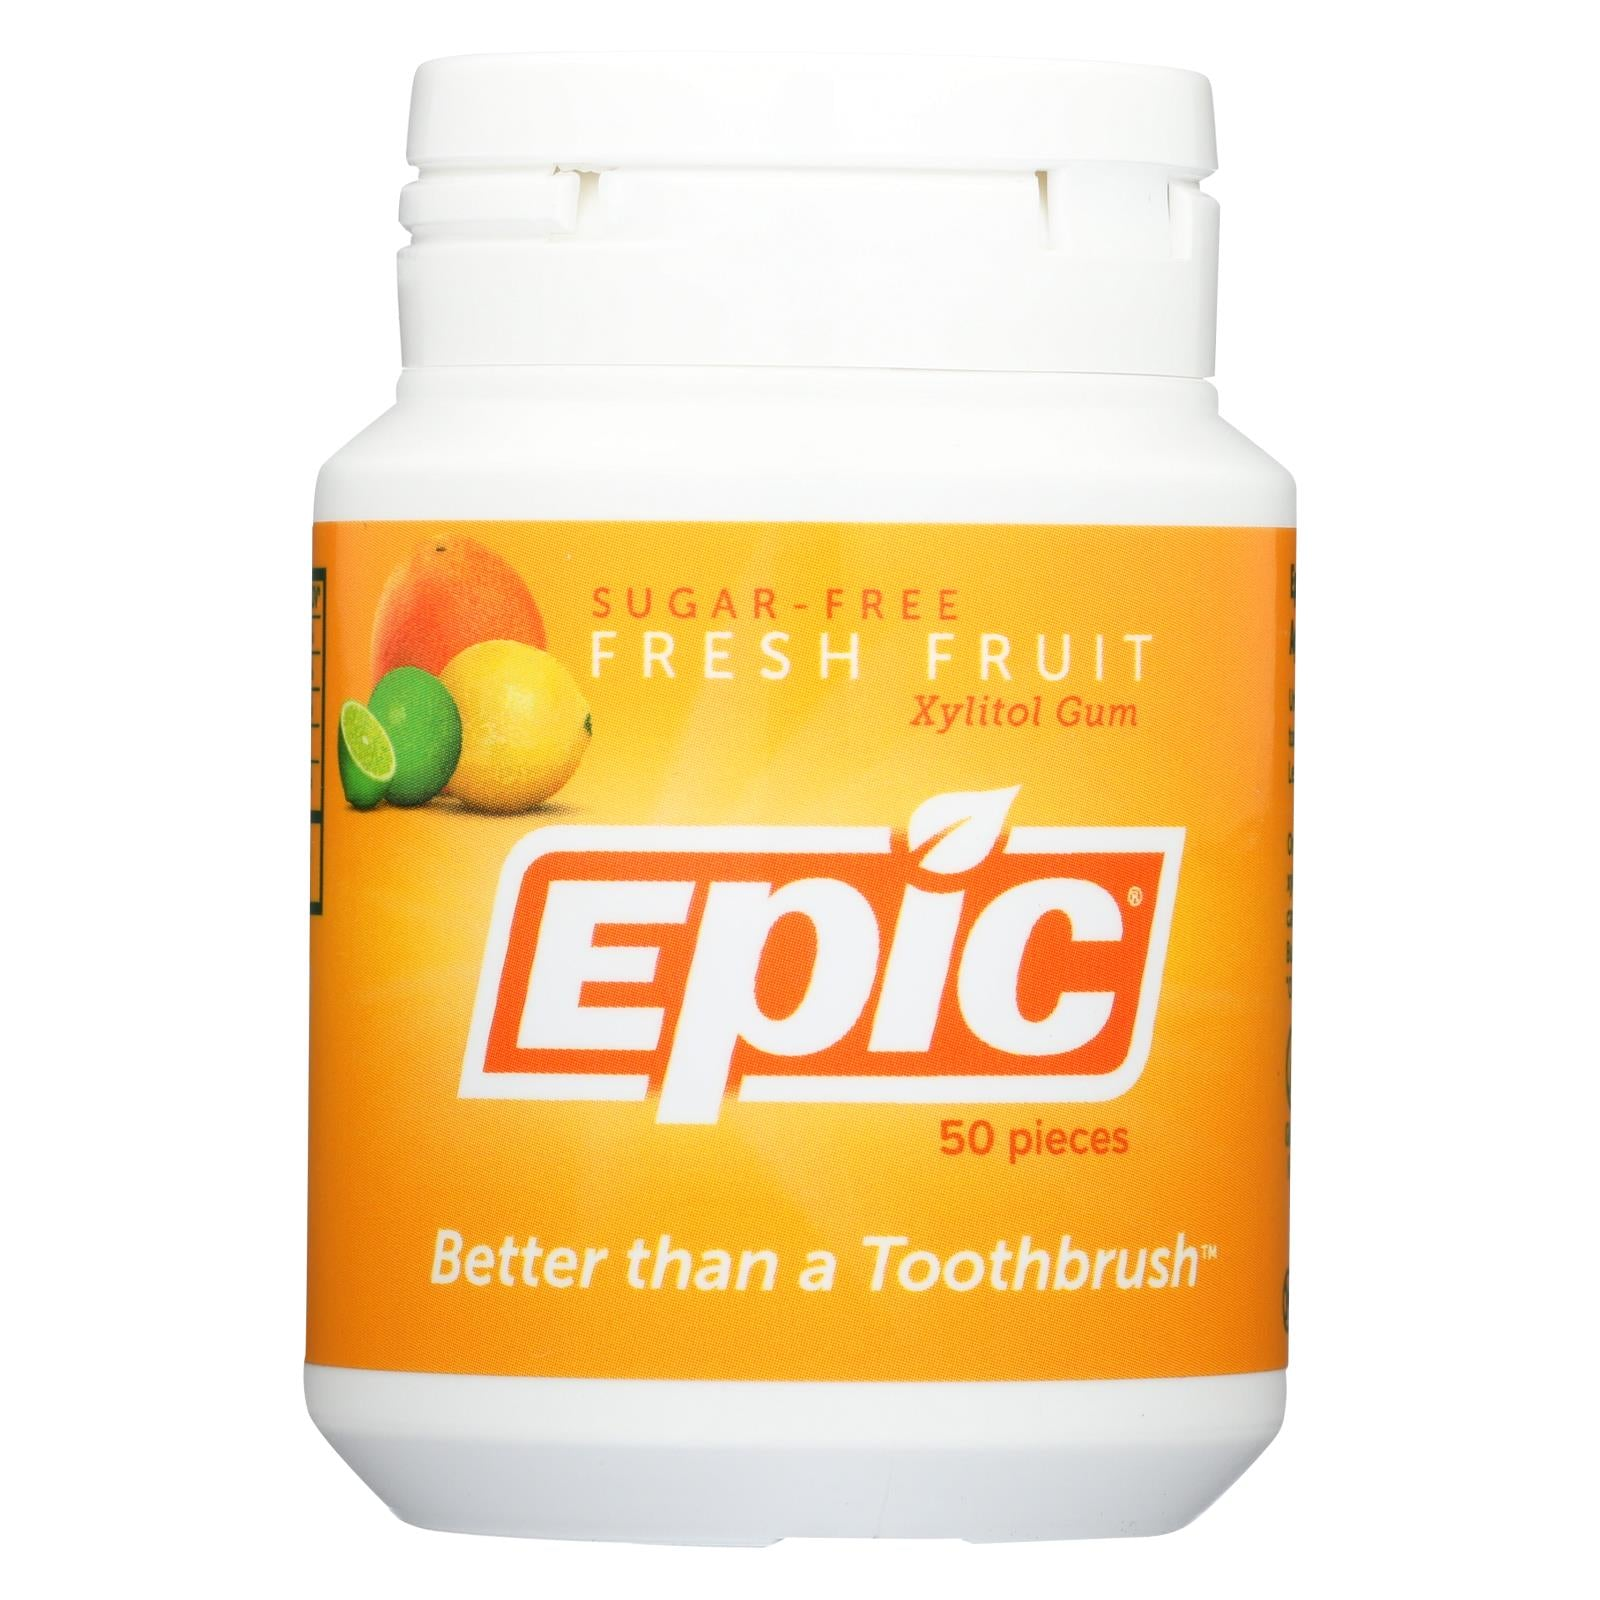 Buy Epic Dental Xylitol Gum - Fresh Fruit - 50 Pieces - Candy and Chewing Gum from Veroeco.com